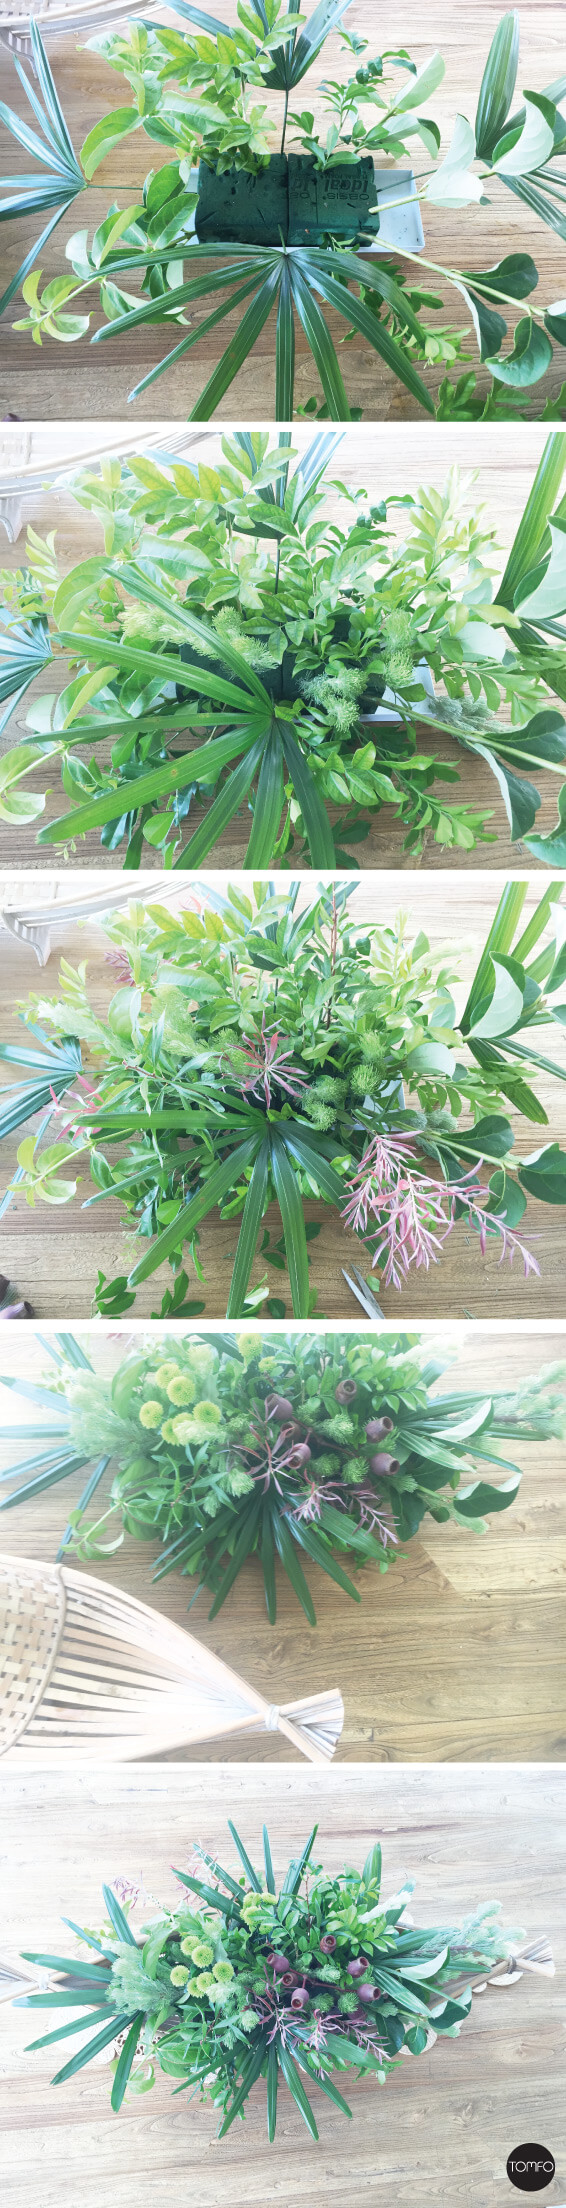 TOMFO-Easy-Diy-Flower-arrangement-with-garden-plants